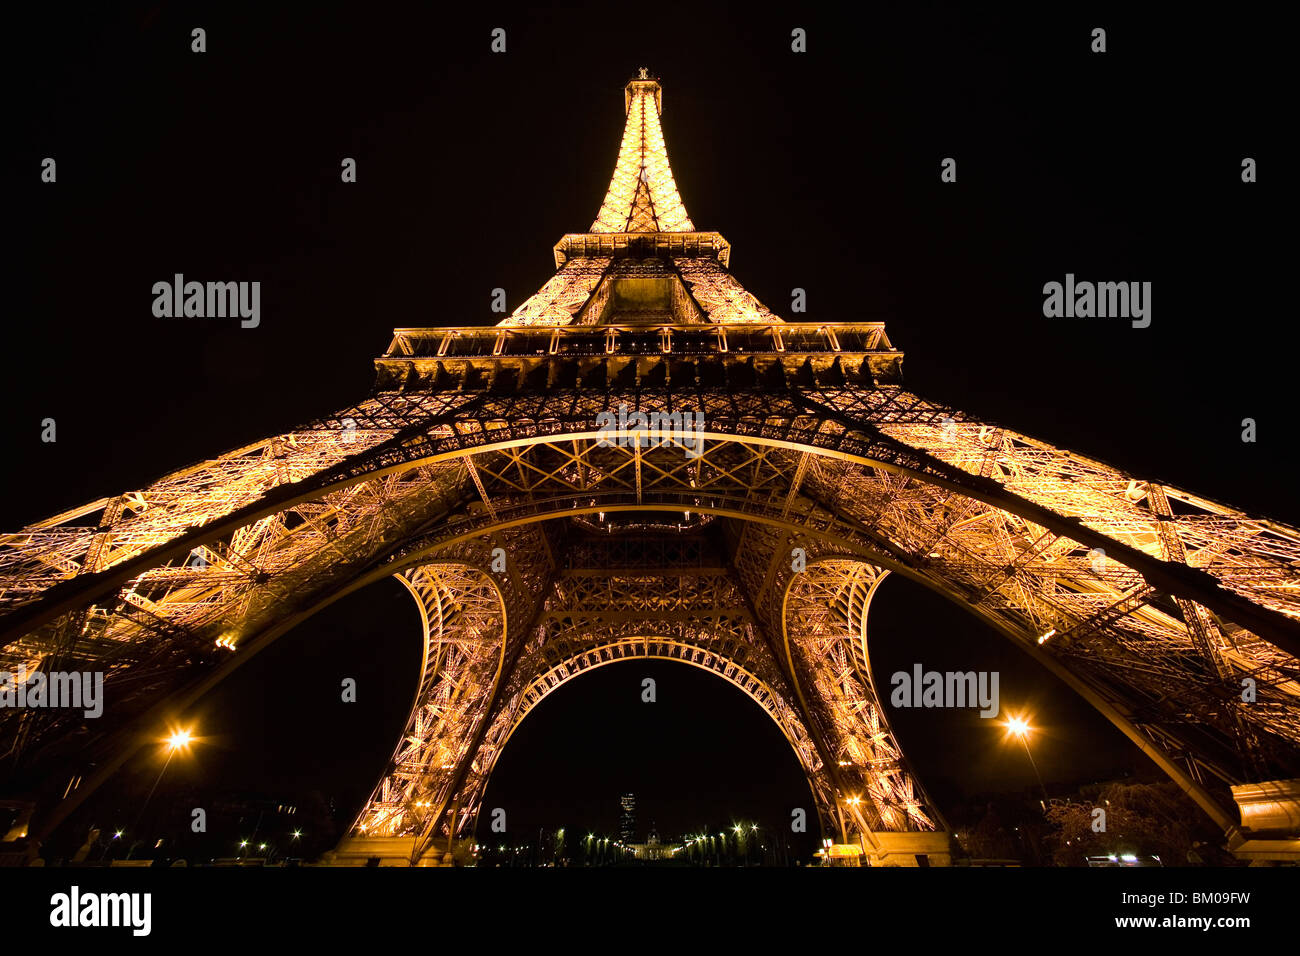 Wide angle view of the Eiffel Tower at night from below with illuminations Stock Photo